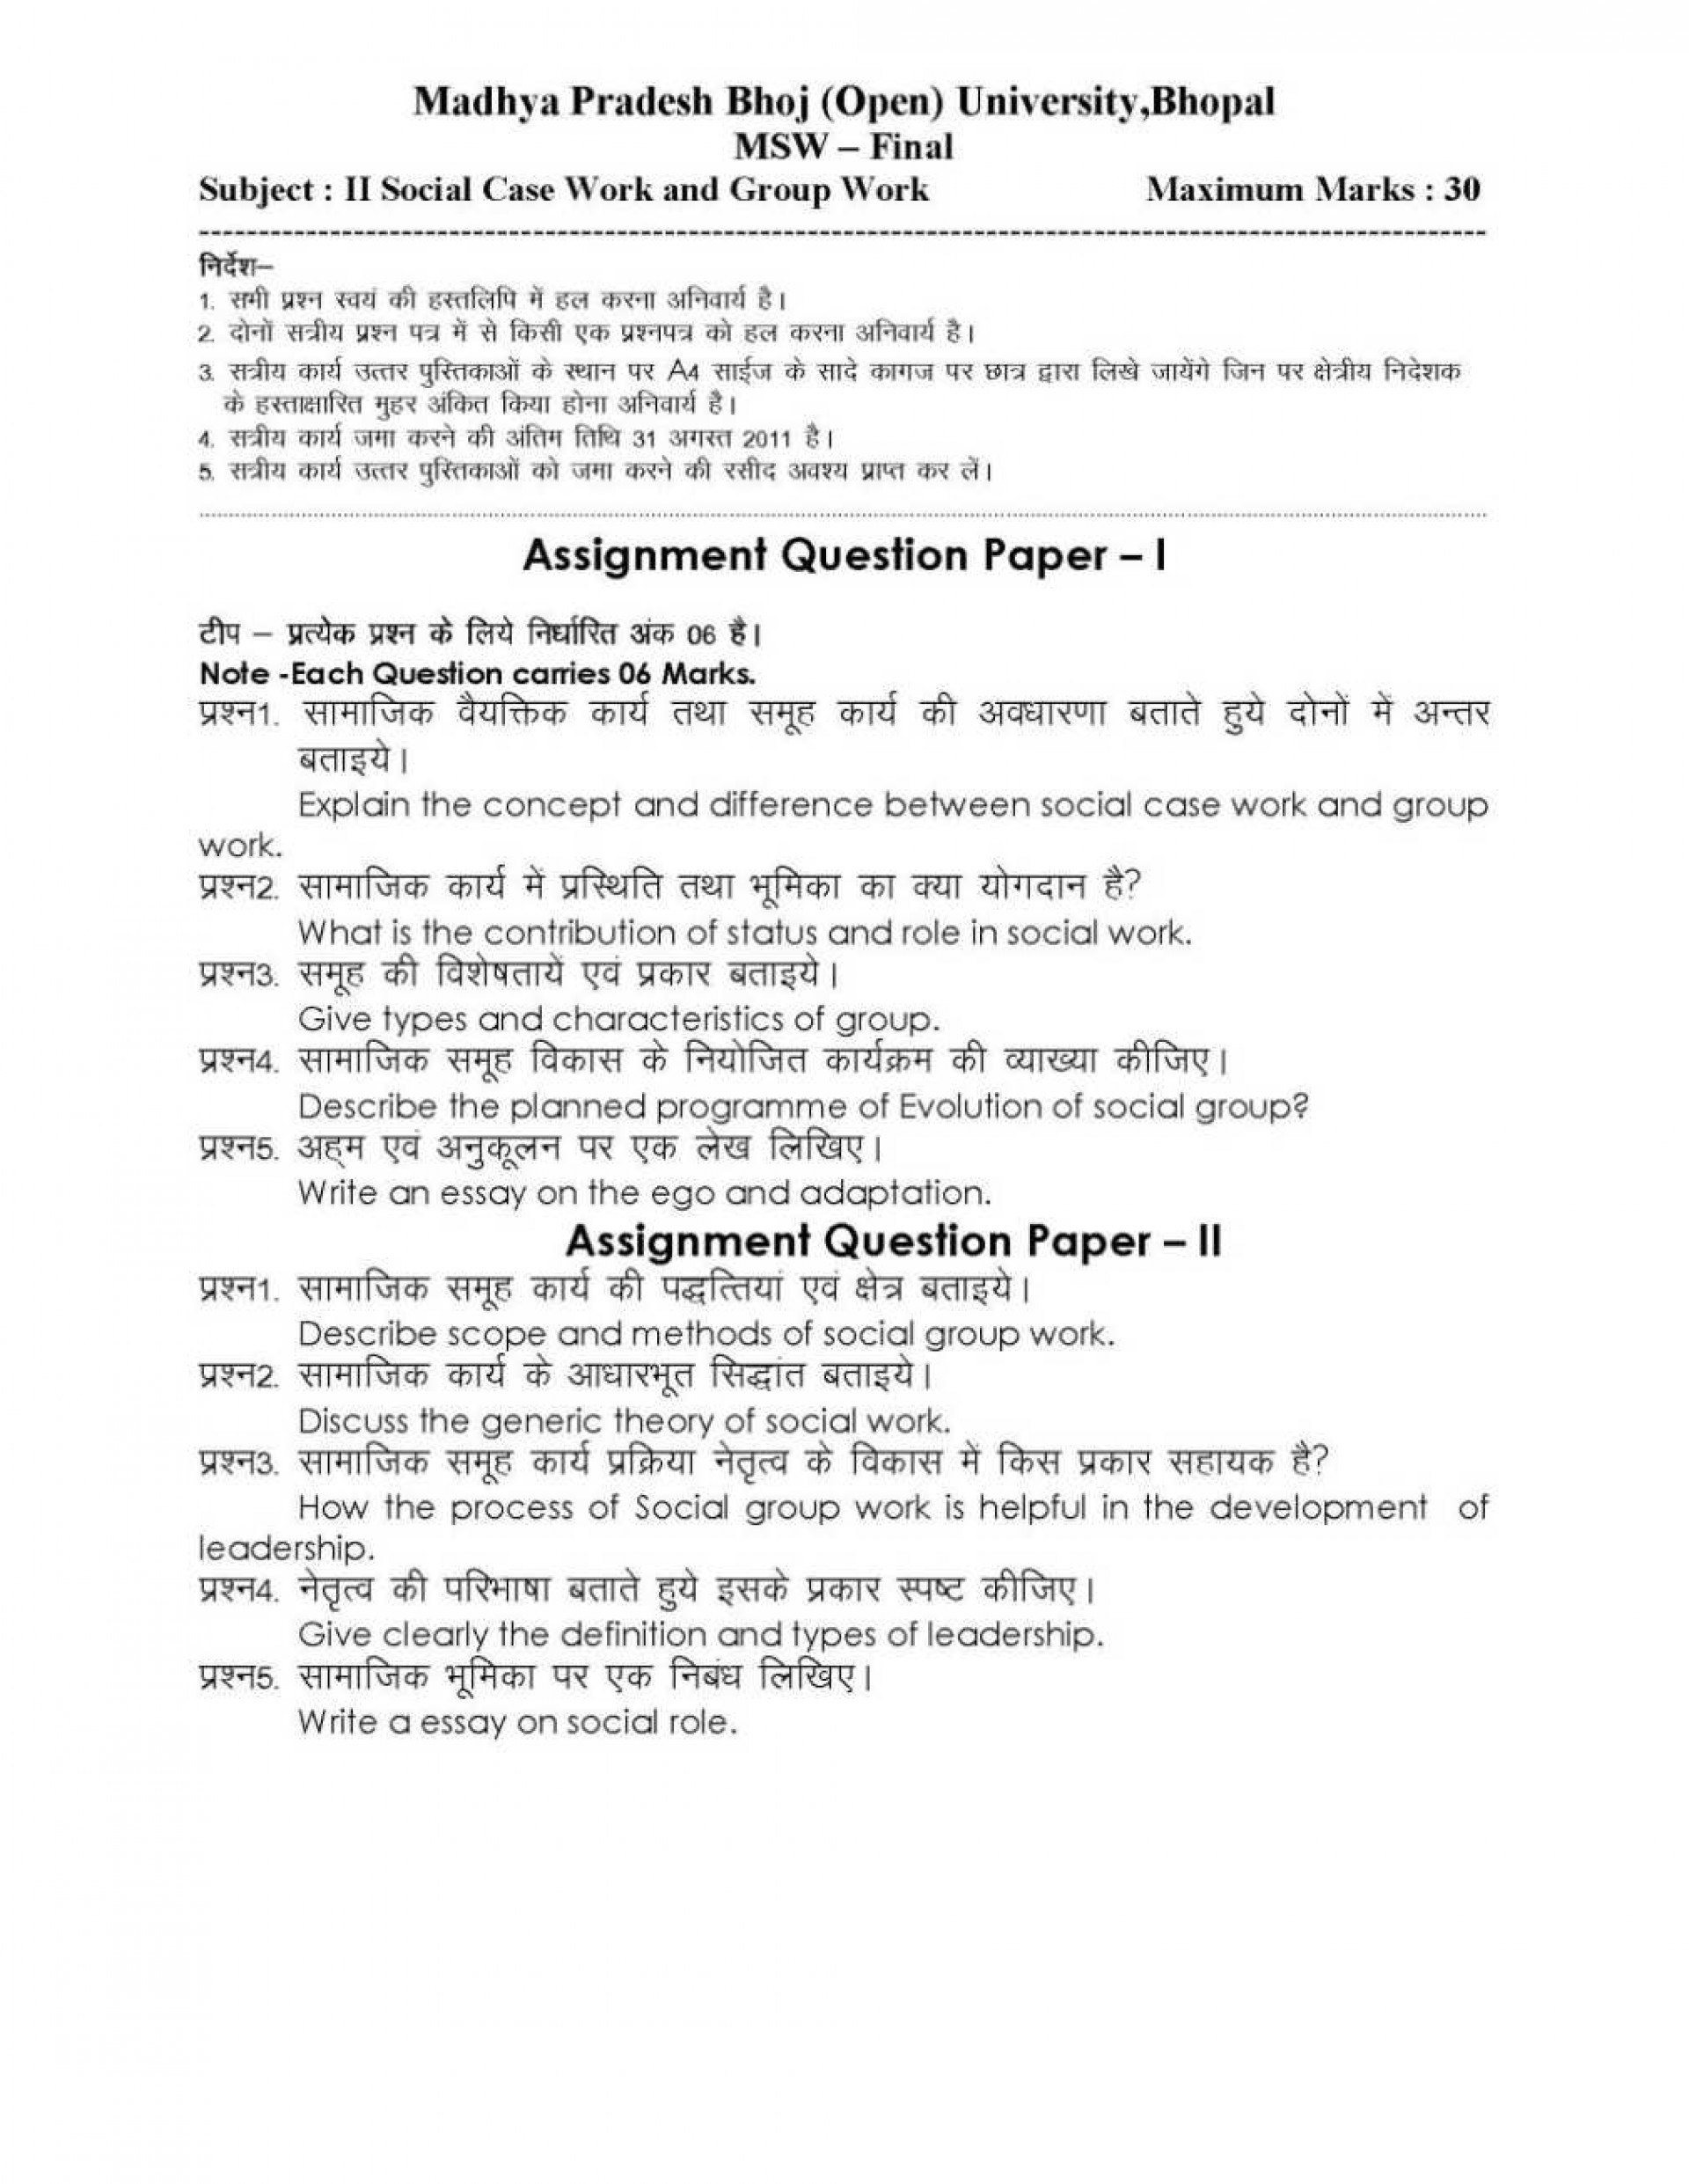 006 Bhoj University Bhopal Msw Essay Example What Makes Good Awesome A Leader Pdf Successful 1920